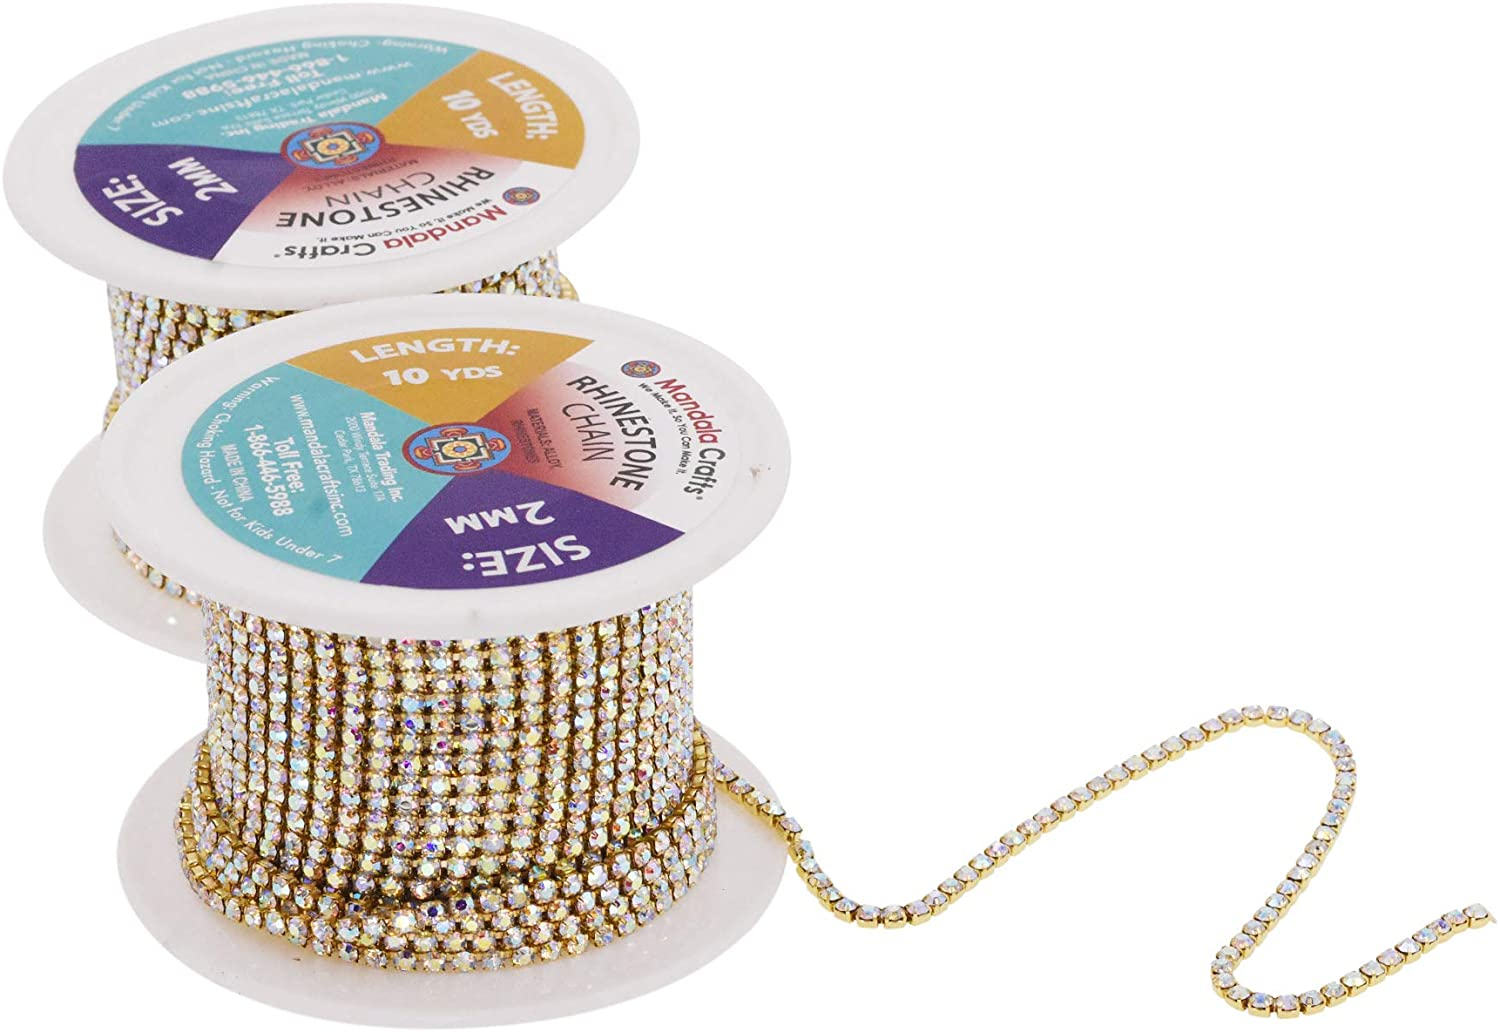 Mandala Crafts Rhinestone Cup Chain Trim Roll for Jewelry Making, Clothes, Glass Crystal Glam Decor, Simulated Diamond Beaded Bling Wraps, Veils, Cakes (1 Row 2mm 20 Yards 2 Rolls, Clear)